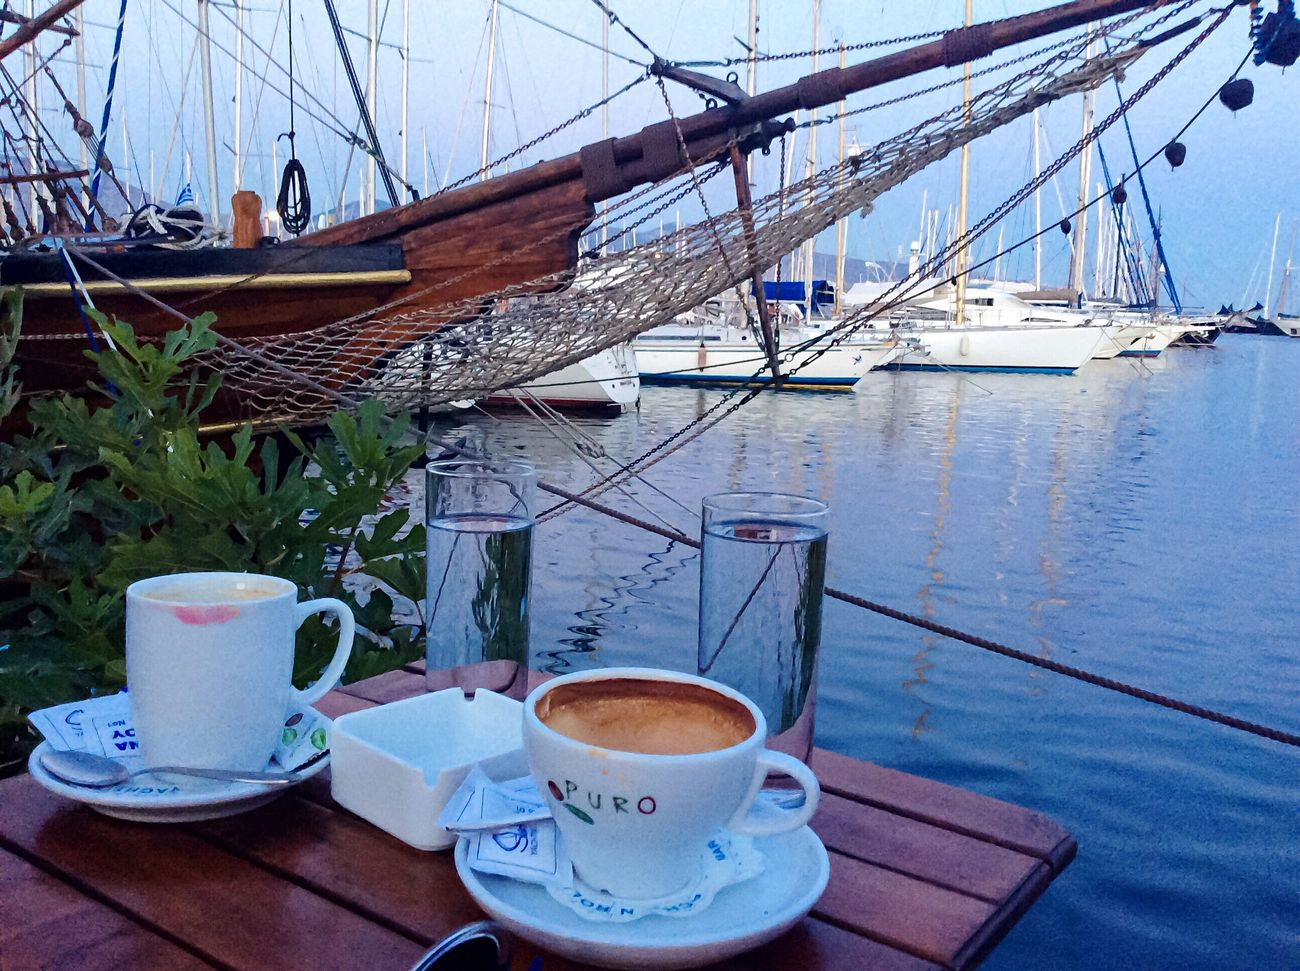 Back home, enjoying Summer in the city, in good company. Drinking Coffee By The Sea Sailboat Marina Dusk Hanging Out Calm Tranquility My Country In A Photo From My Point Of View I Love My City